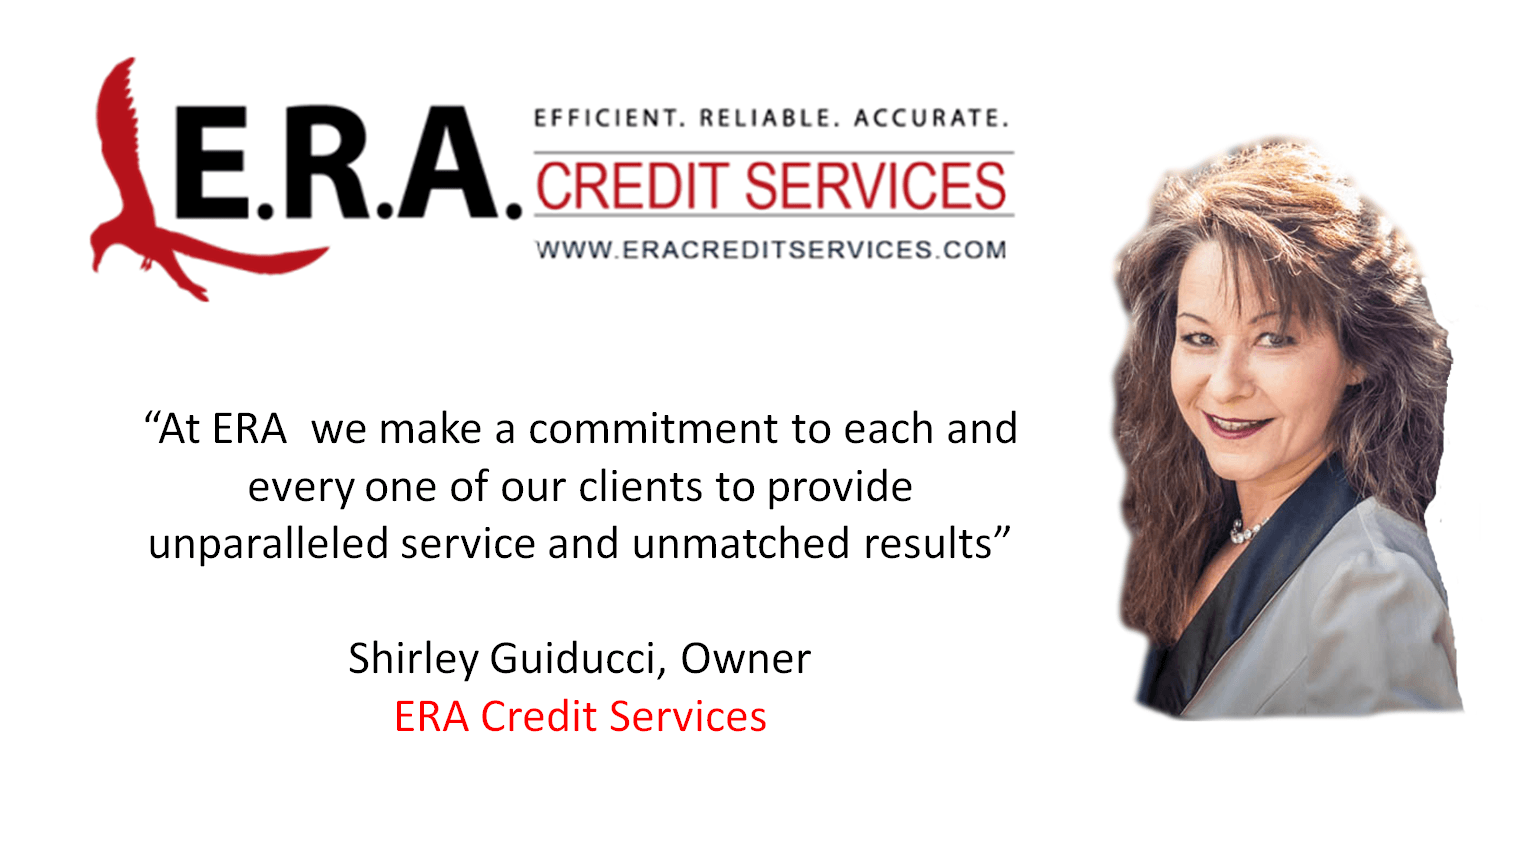 ERA Credit Services About